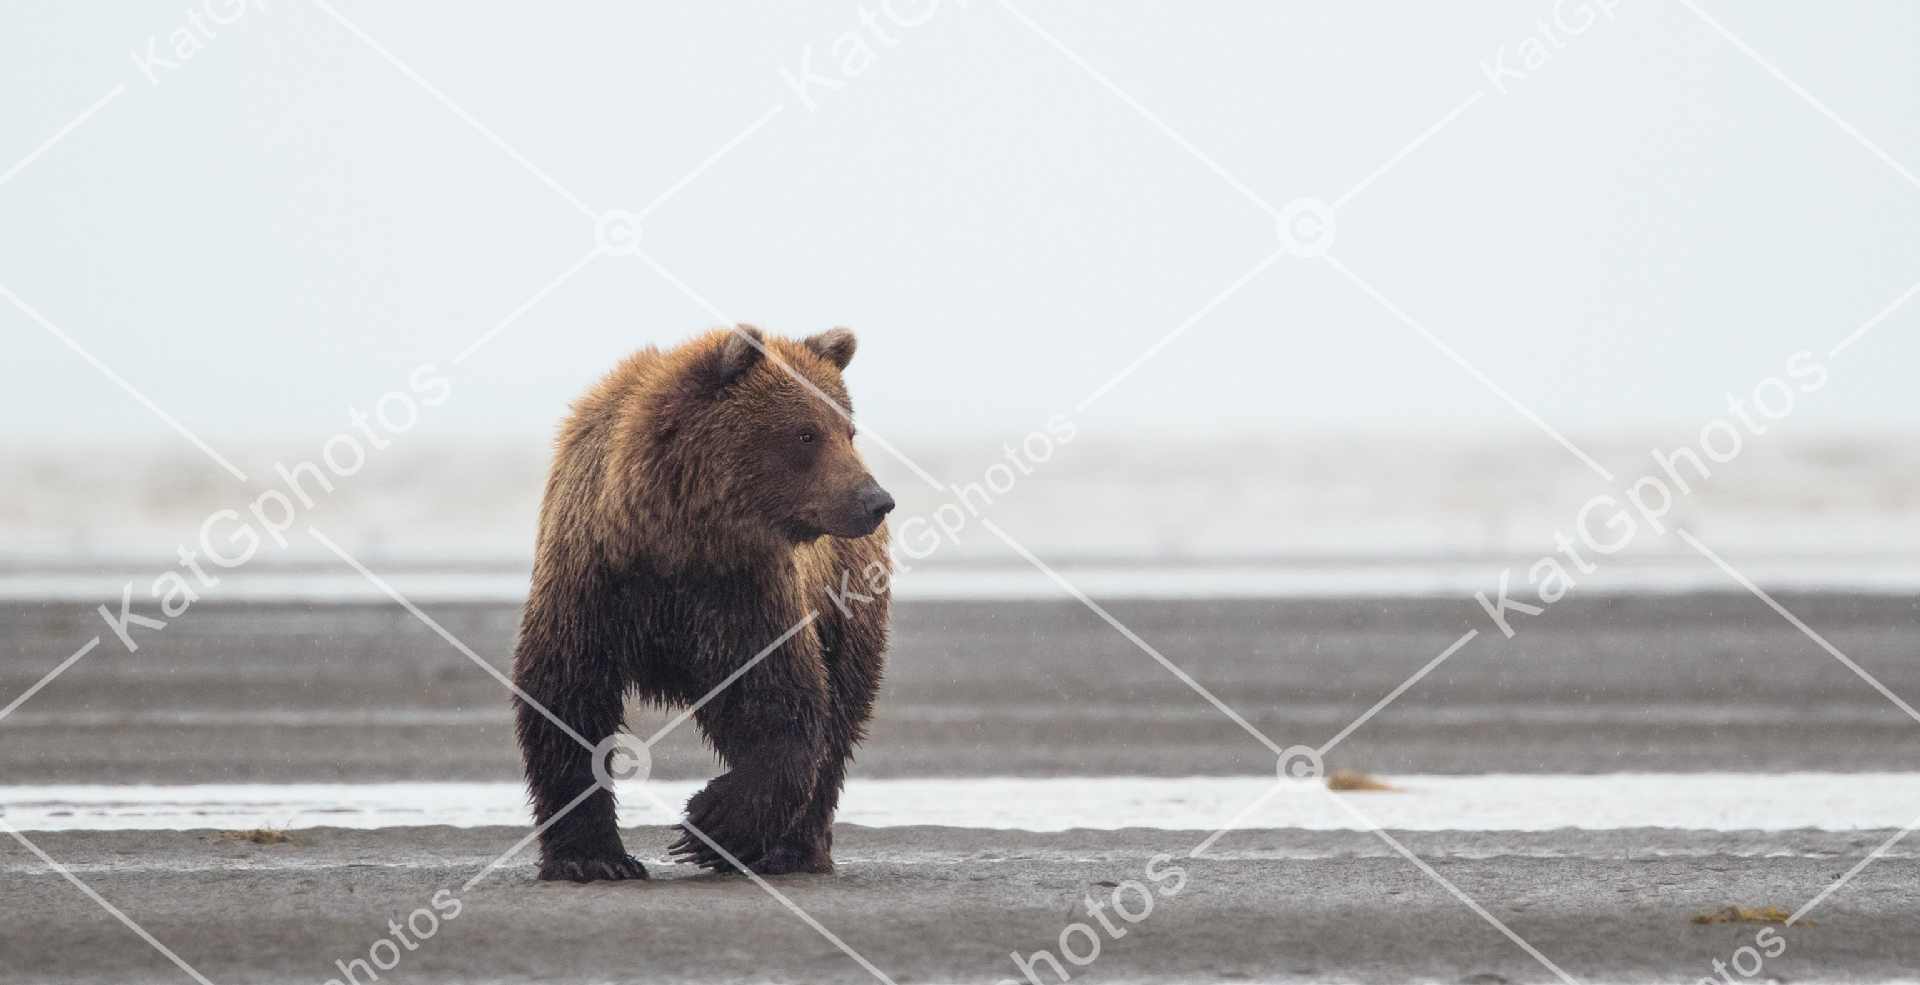 Grizzly bears, grizzly bear, bears, Alaska, wild,  lindbladexp, natgeo, perfect, nature,  animal captures, beautiful, wildlife